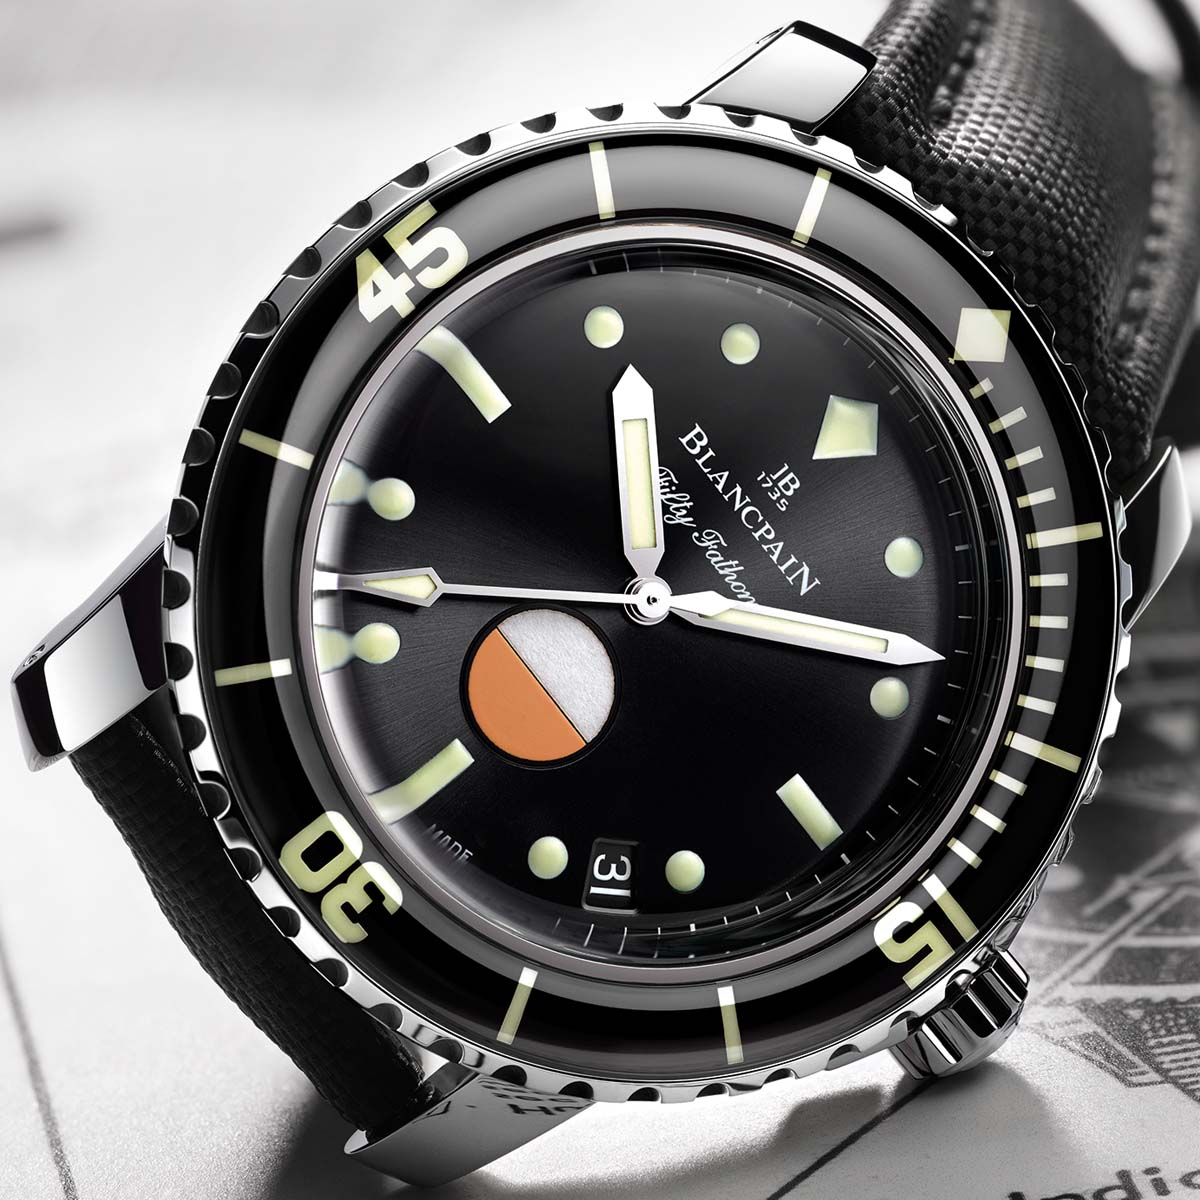 The Watch Quote: Photo - Blancpain Tribute to Fifty Fathoms MIL-SPEC